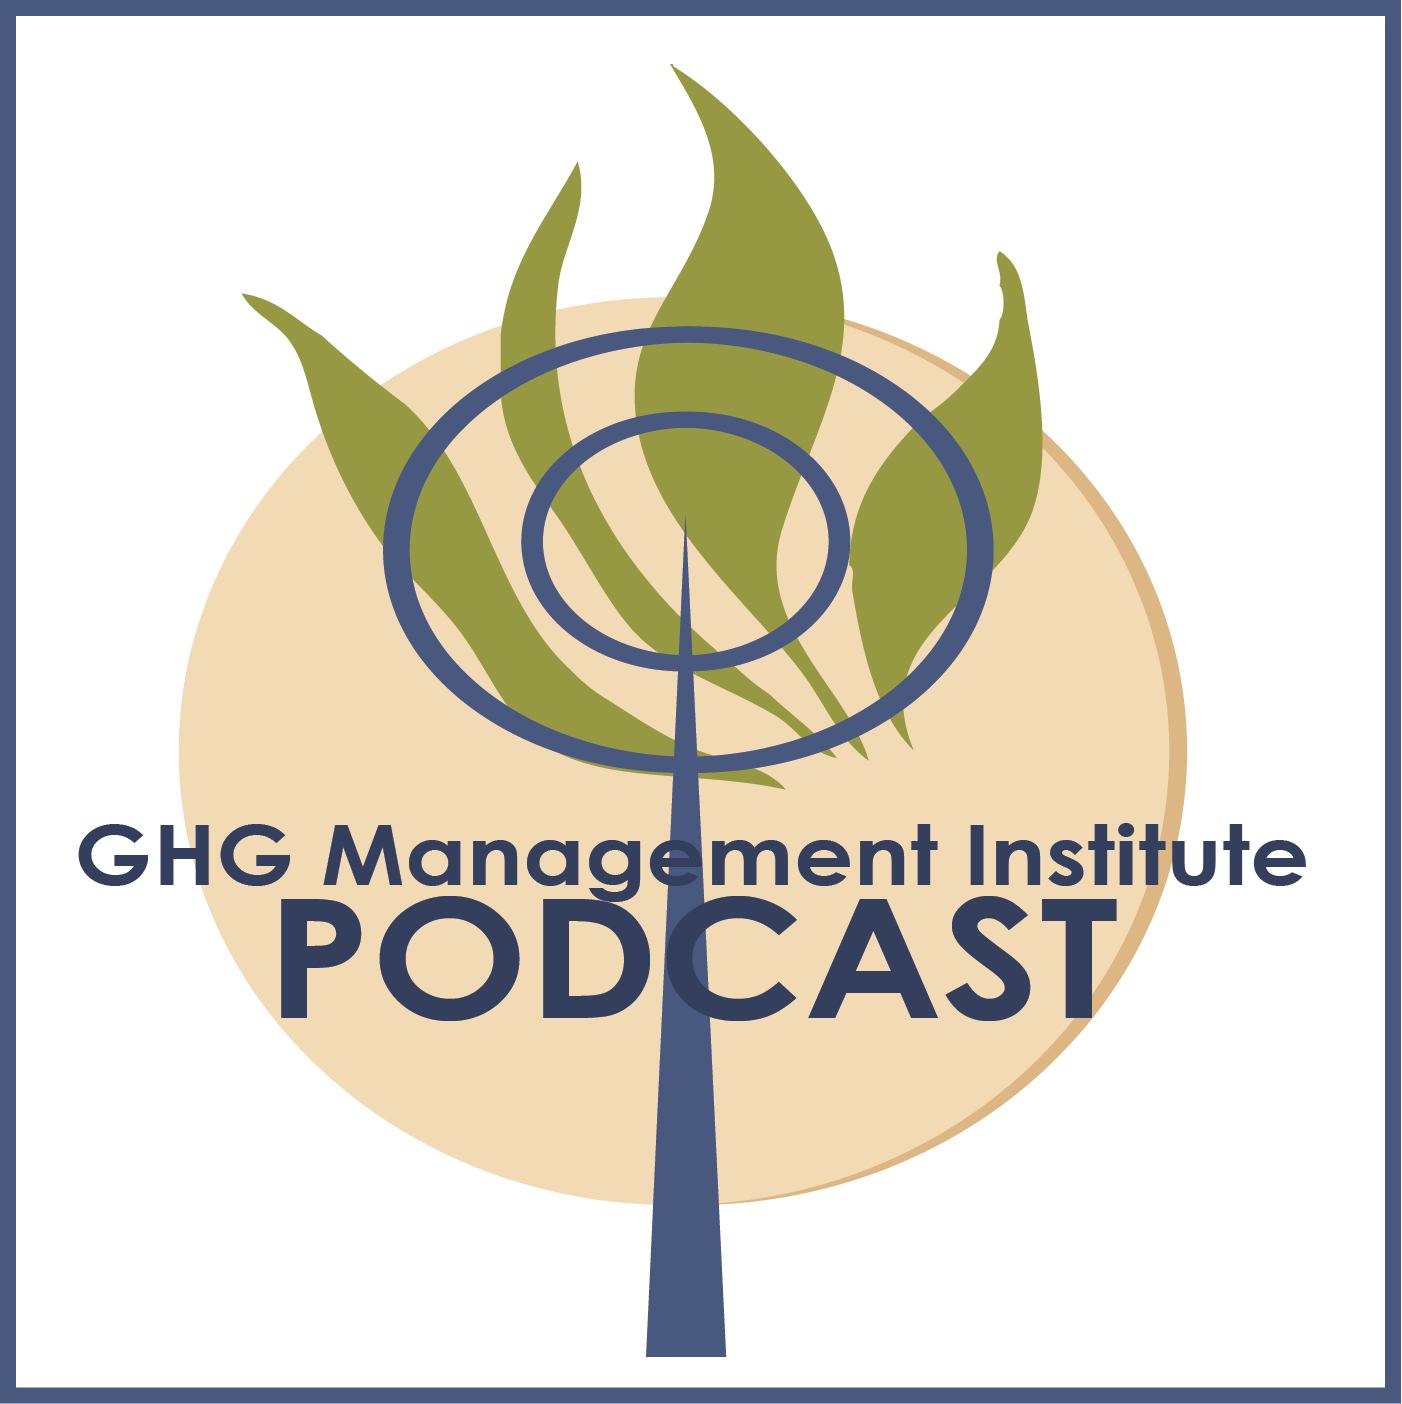 GHG and Carbon Management